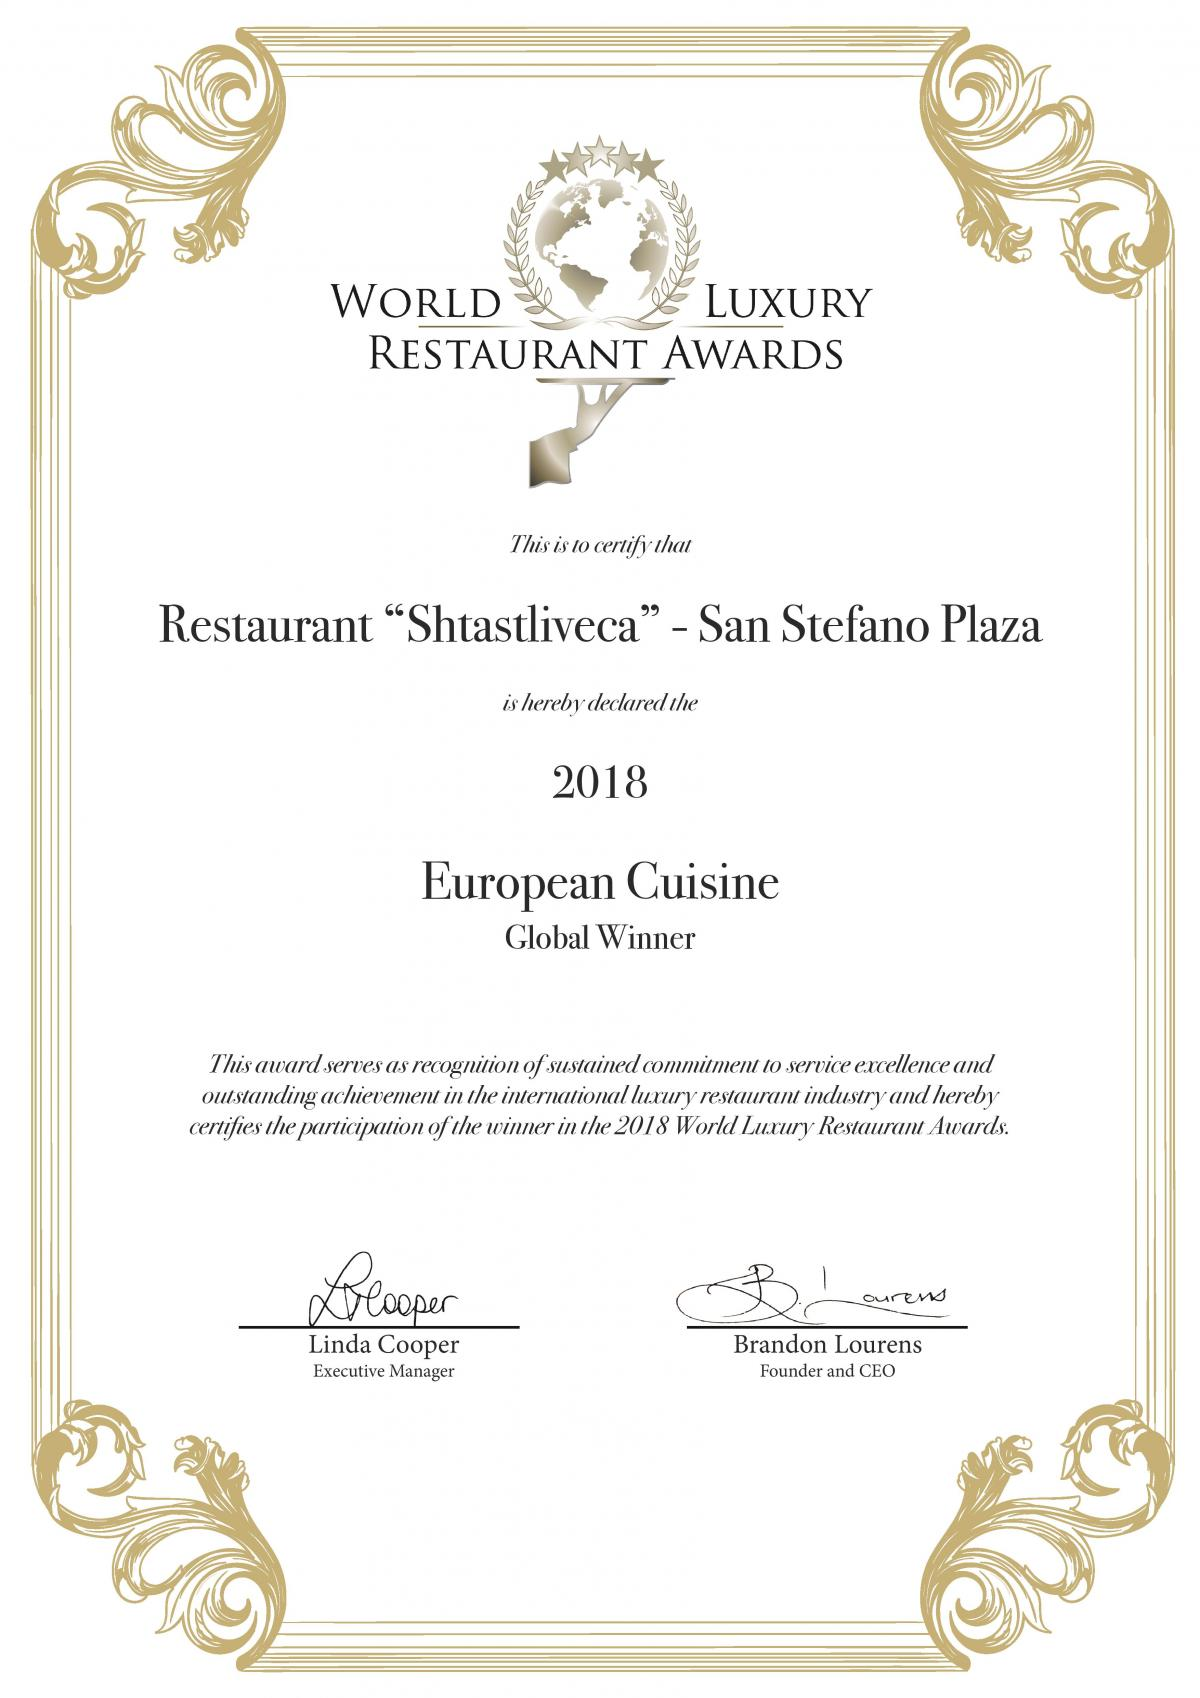 World Luxury Restaurants Awards - European Cuisine Global Winner 2018